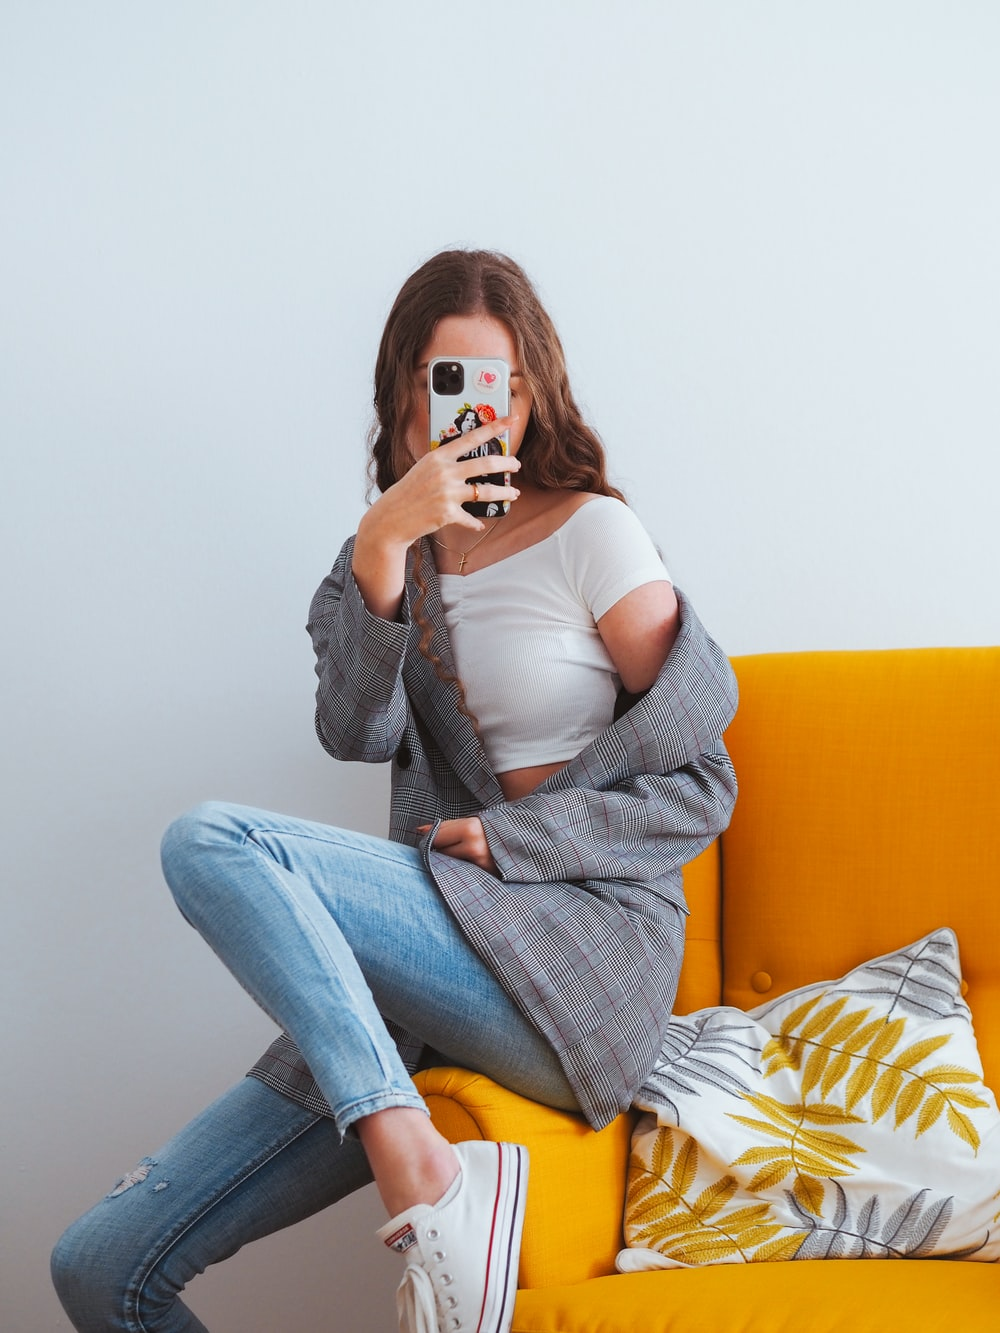 woman in gray cardigan and blue denim jeans sitting on yellow couch